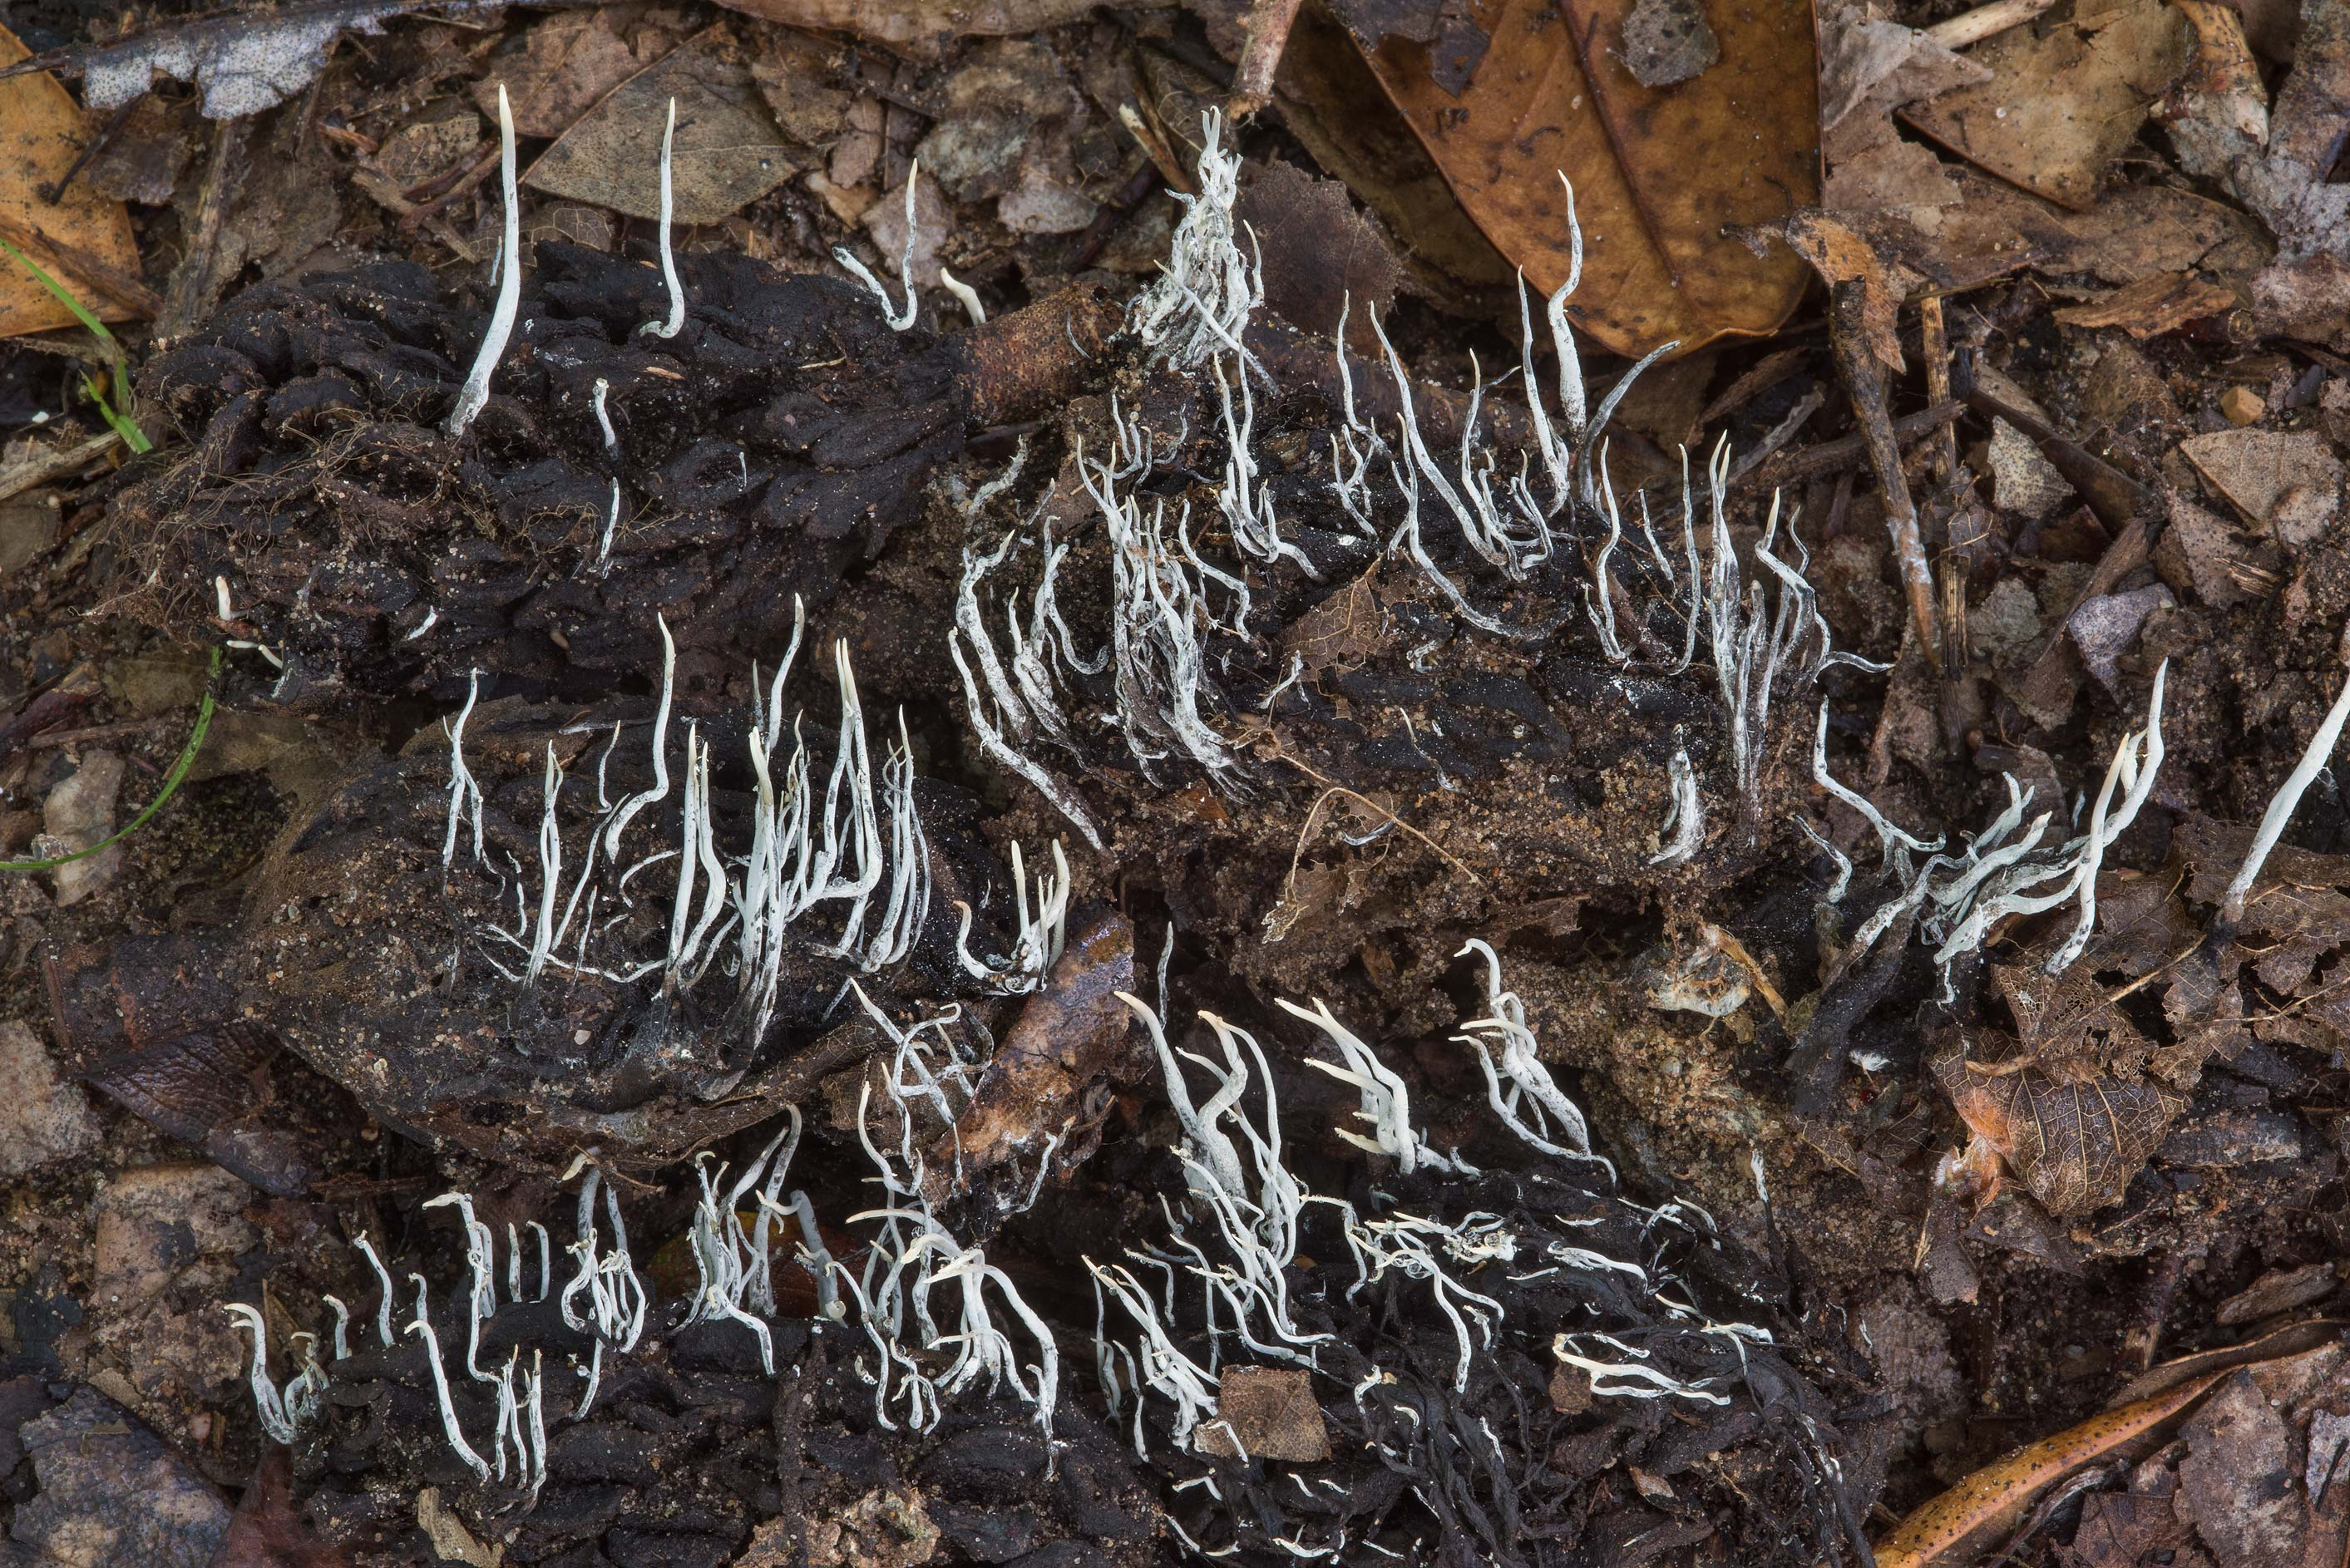 Masses of Xylaria magnoliae mushrooms on a...State Historic Site. Washington, Texas